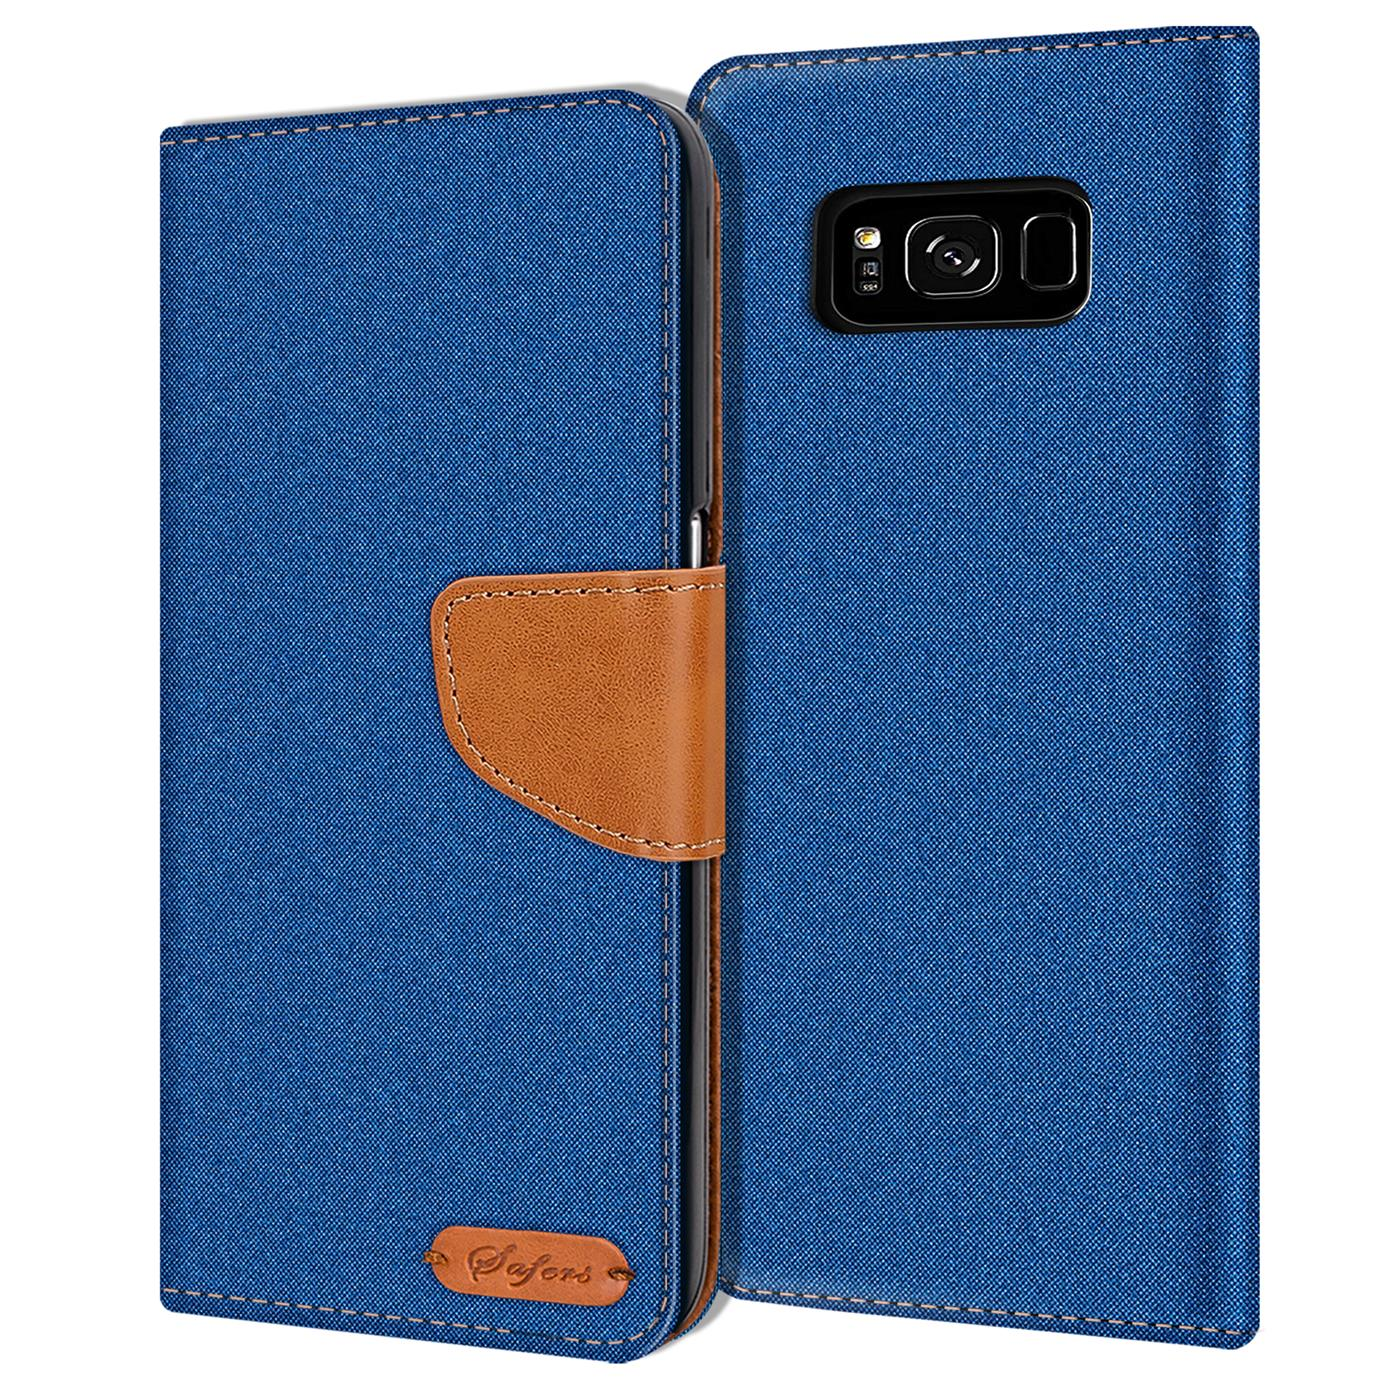 Samsung-Galaxy-S8-Plus-Phone-PU-Leather-Magnetic-Flip-Case-Wallet-Denim-Cover thumbnail 22